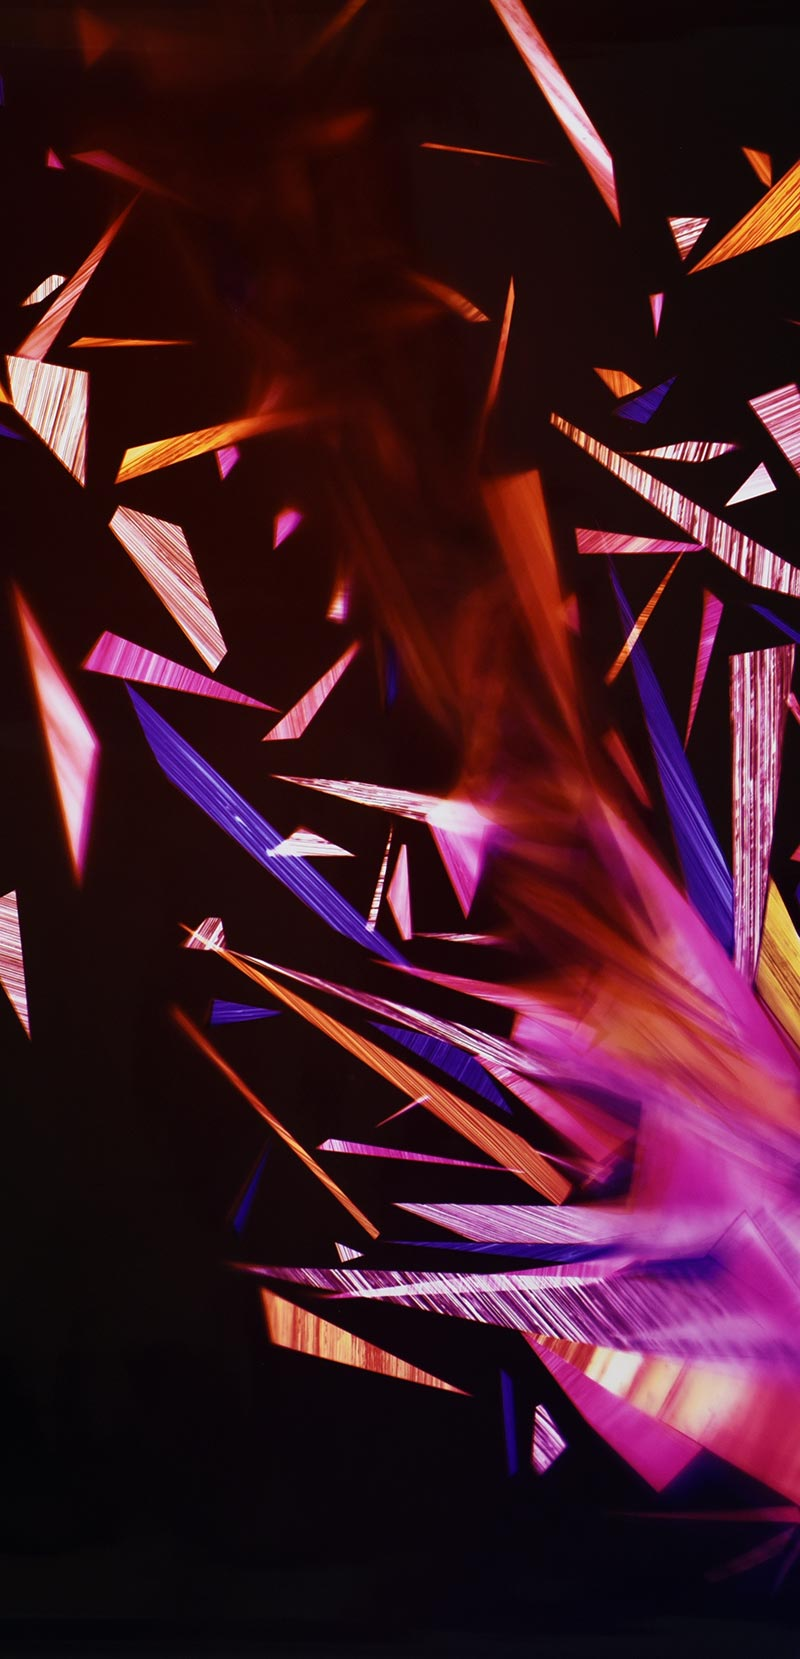 close up detail of color photogram titled: Primordial Sobriety from the series Precariously Bright